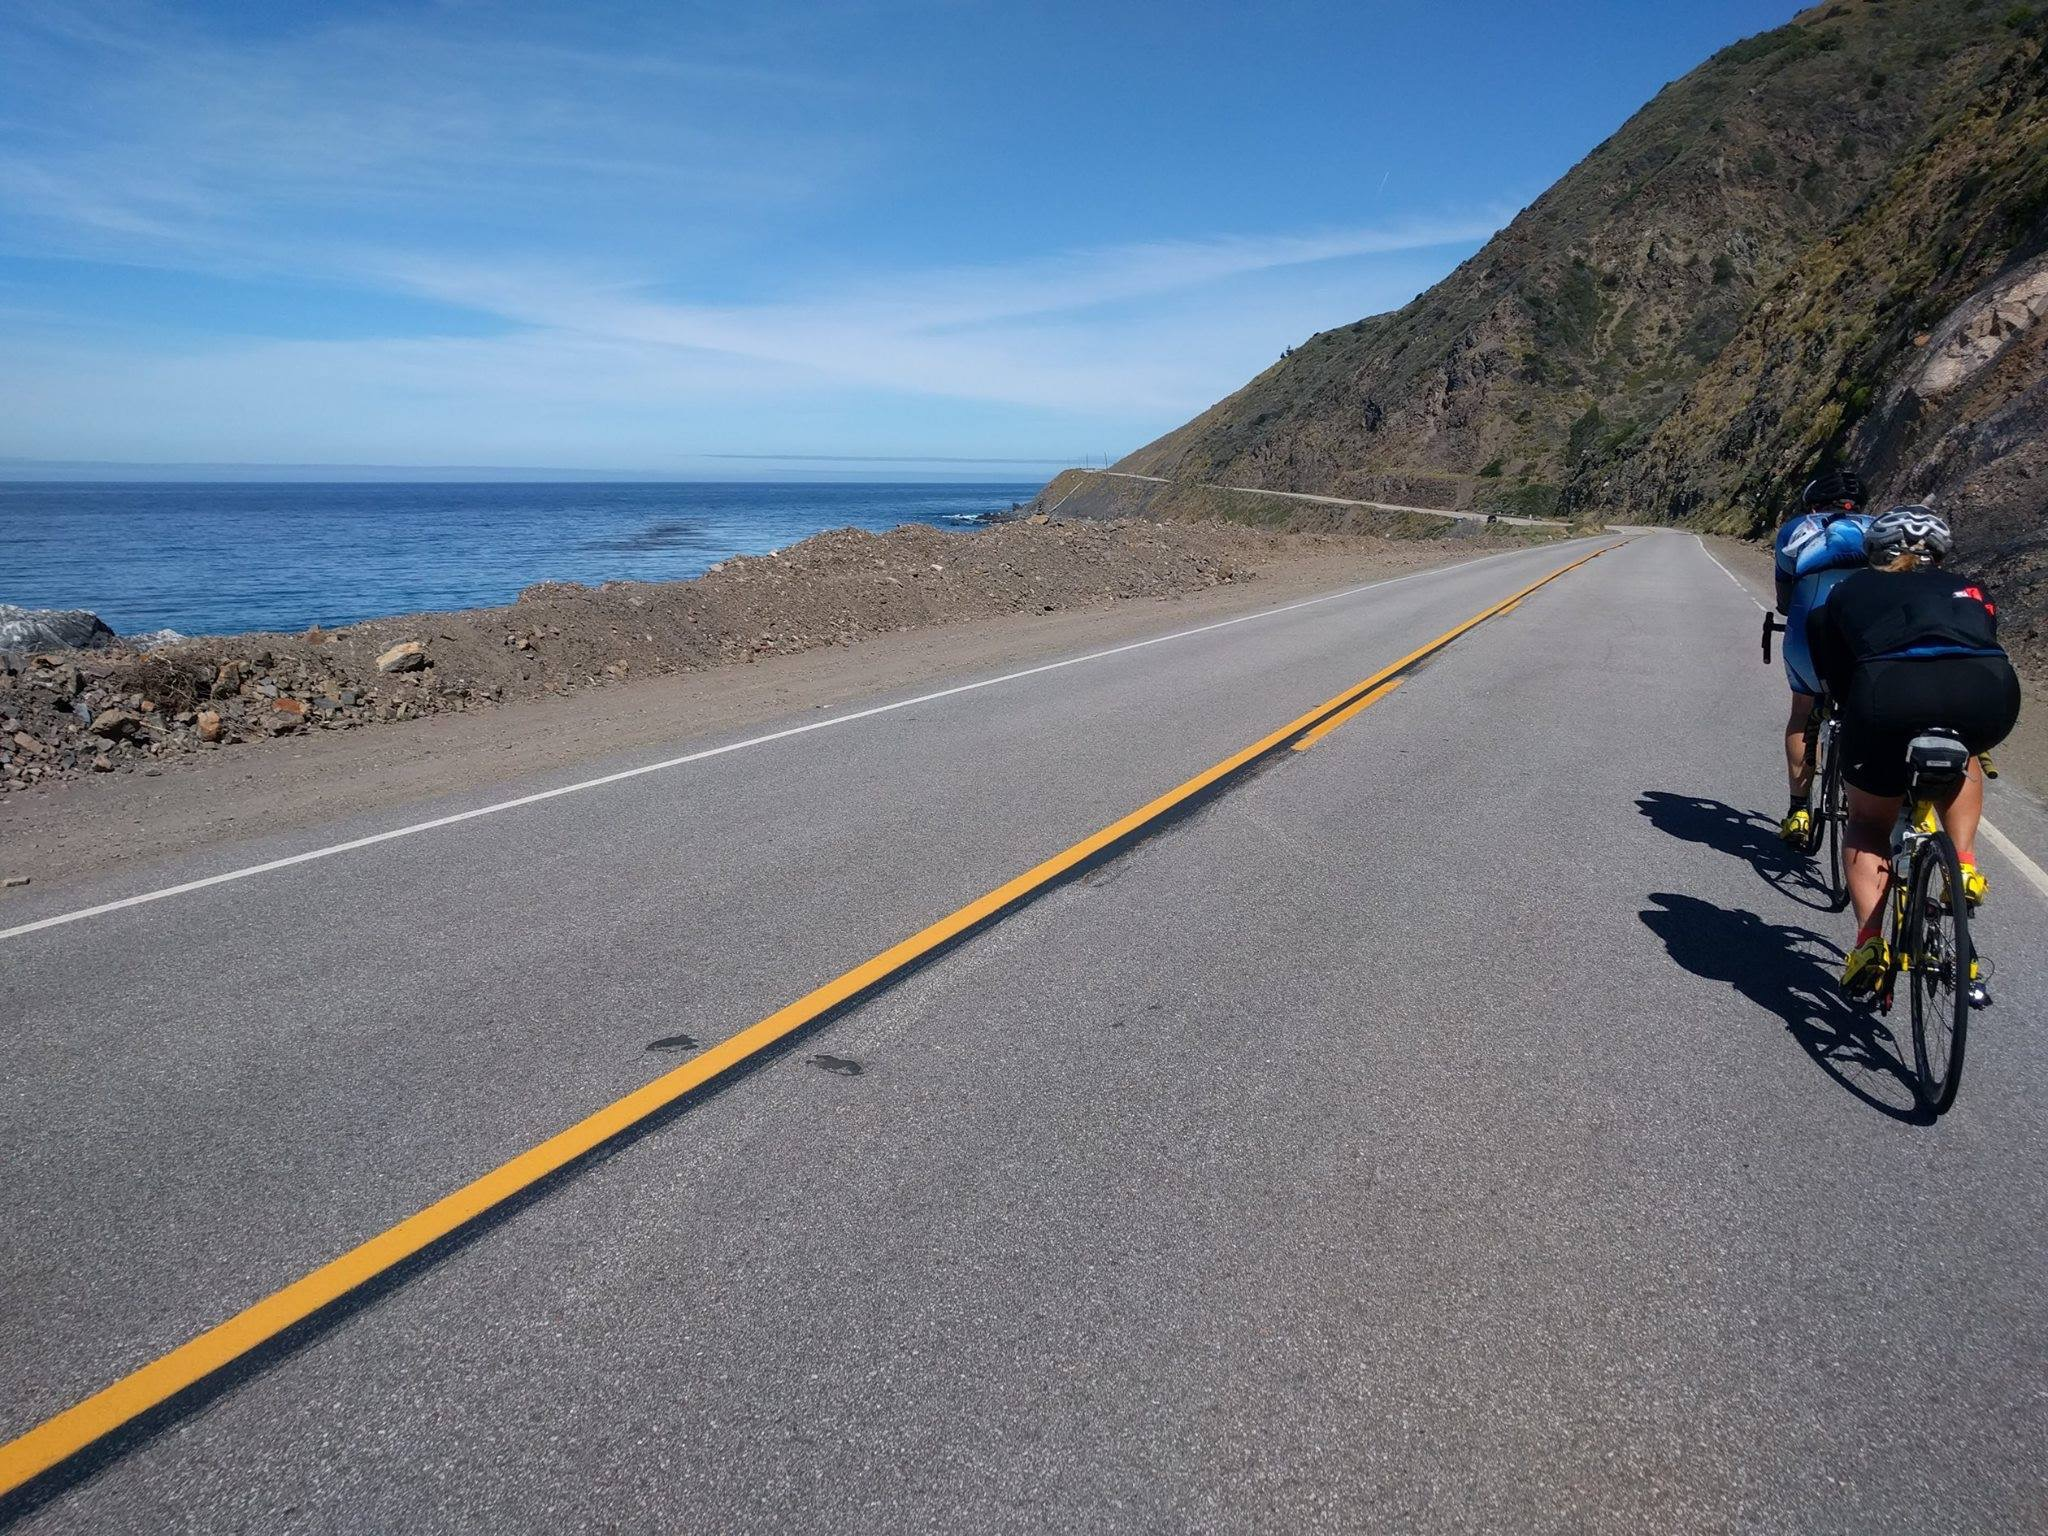 Miles on Highway 1 are beautiful.